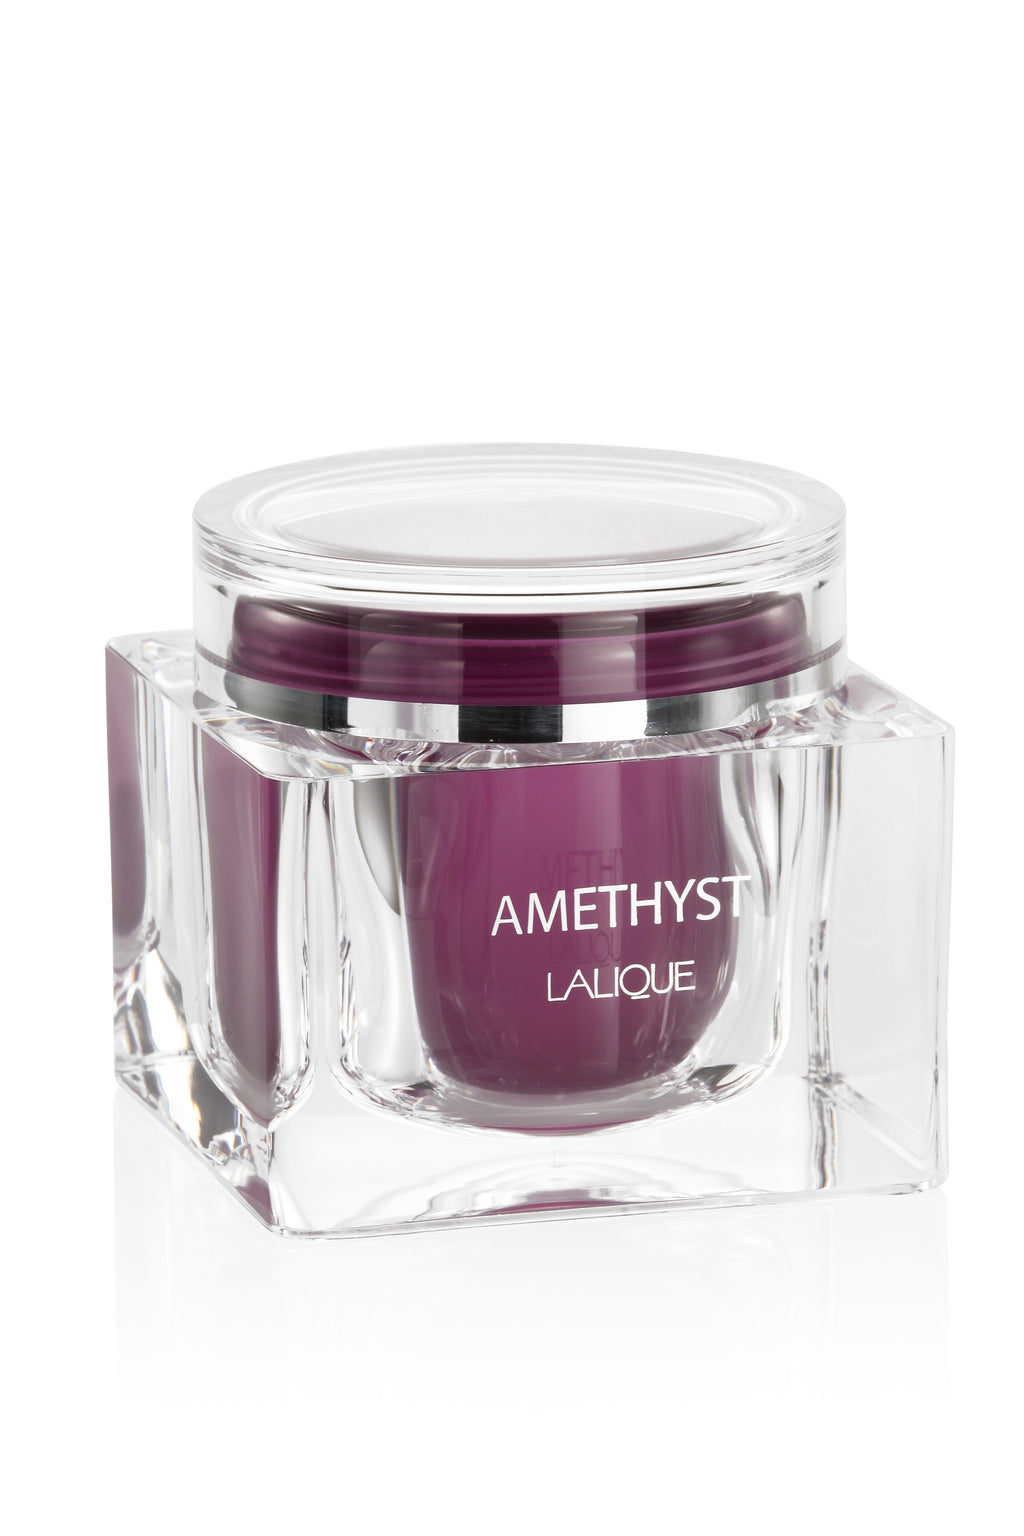 Amethyst 6.6 oz Body Cream